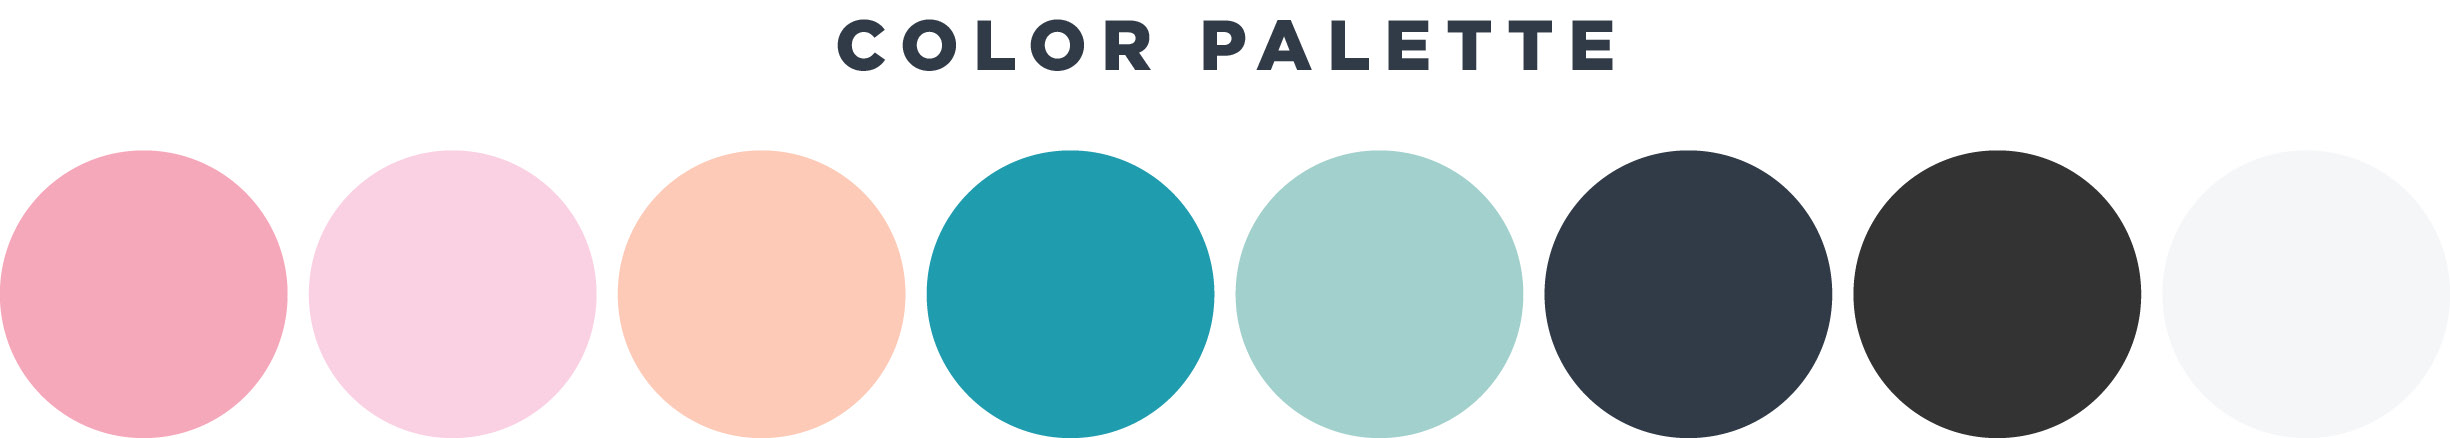 Proof & Parchment branding color palette